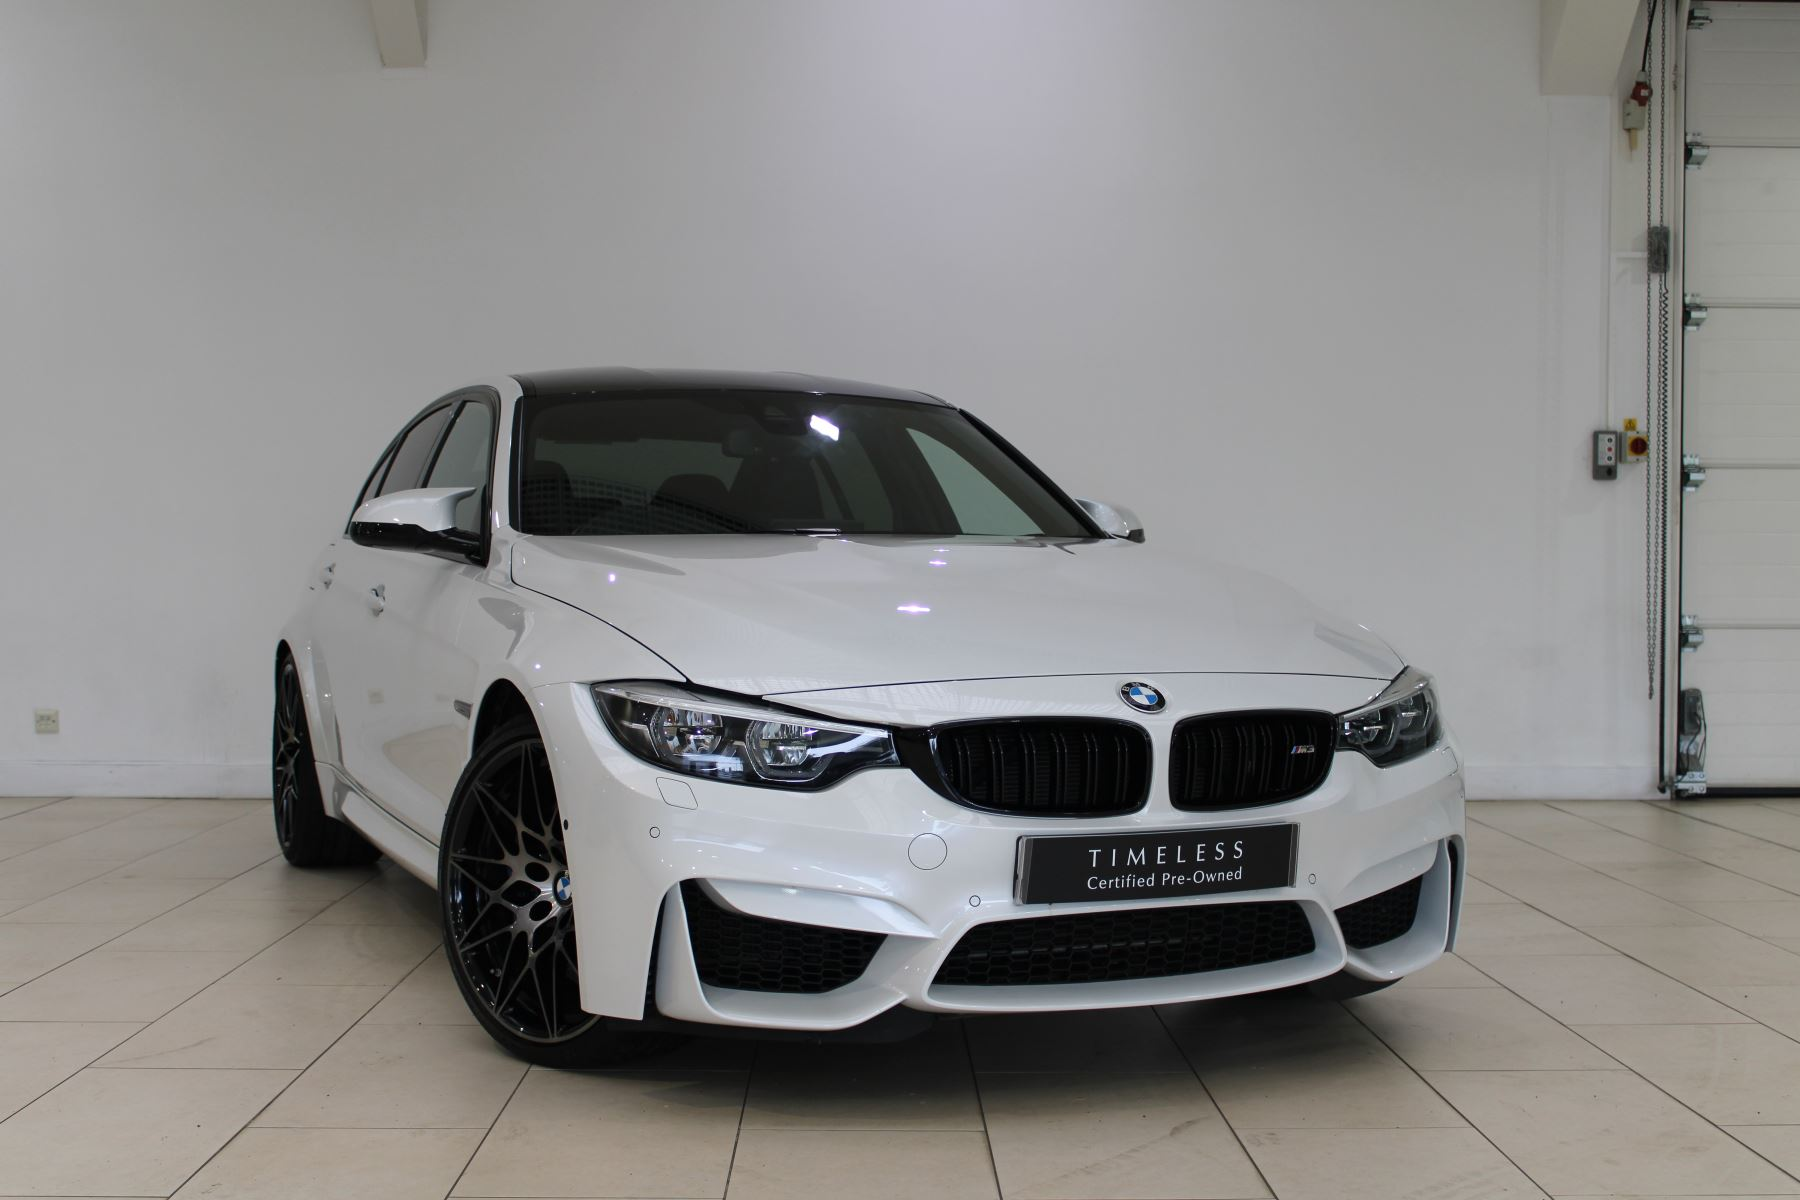 BMW M3 M3 DCT [Competition Pack] 3.0 Automatic 4 door Saloon (2018)